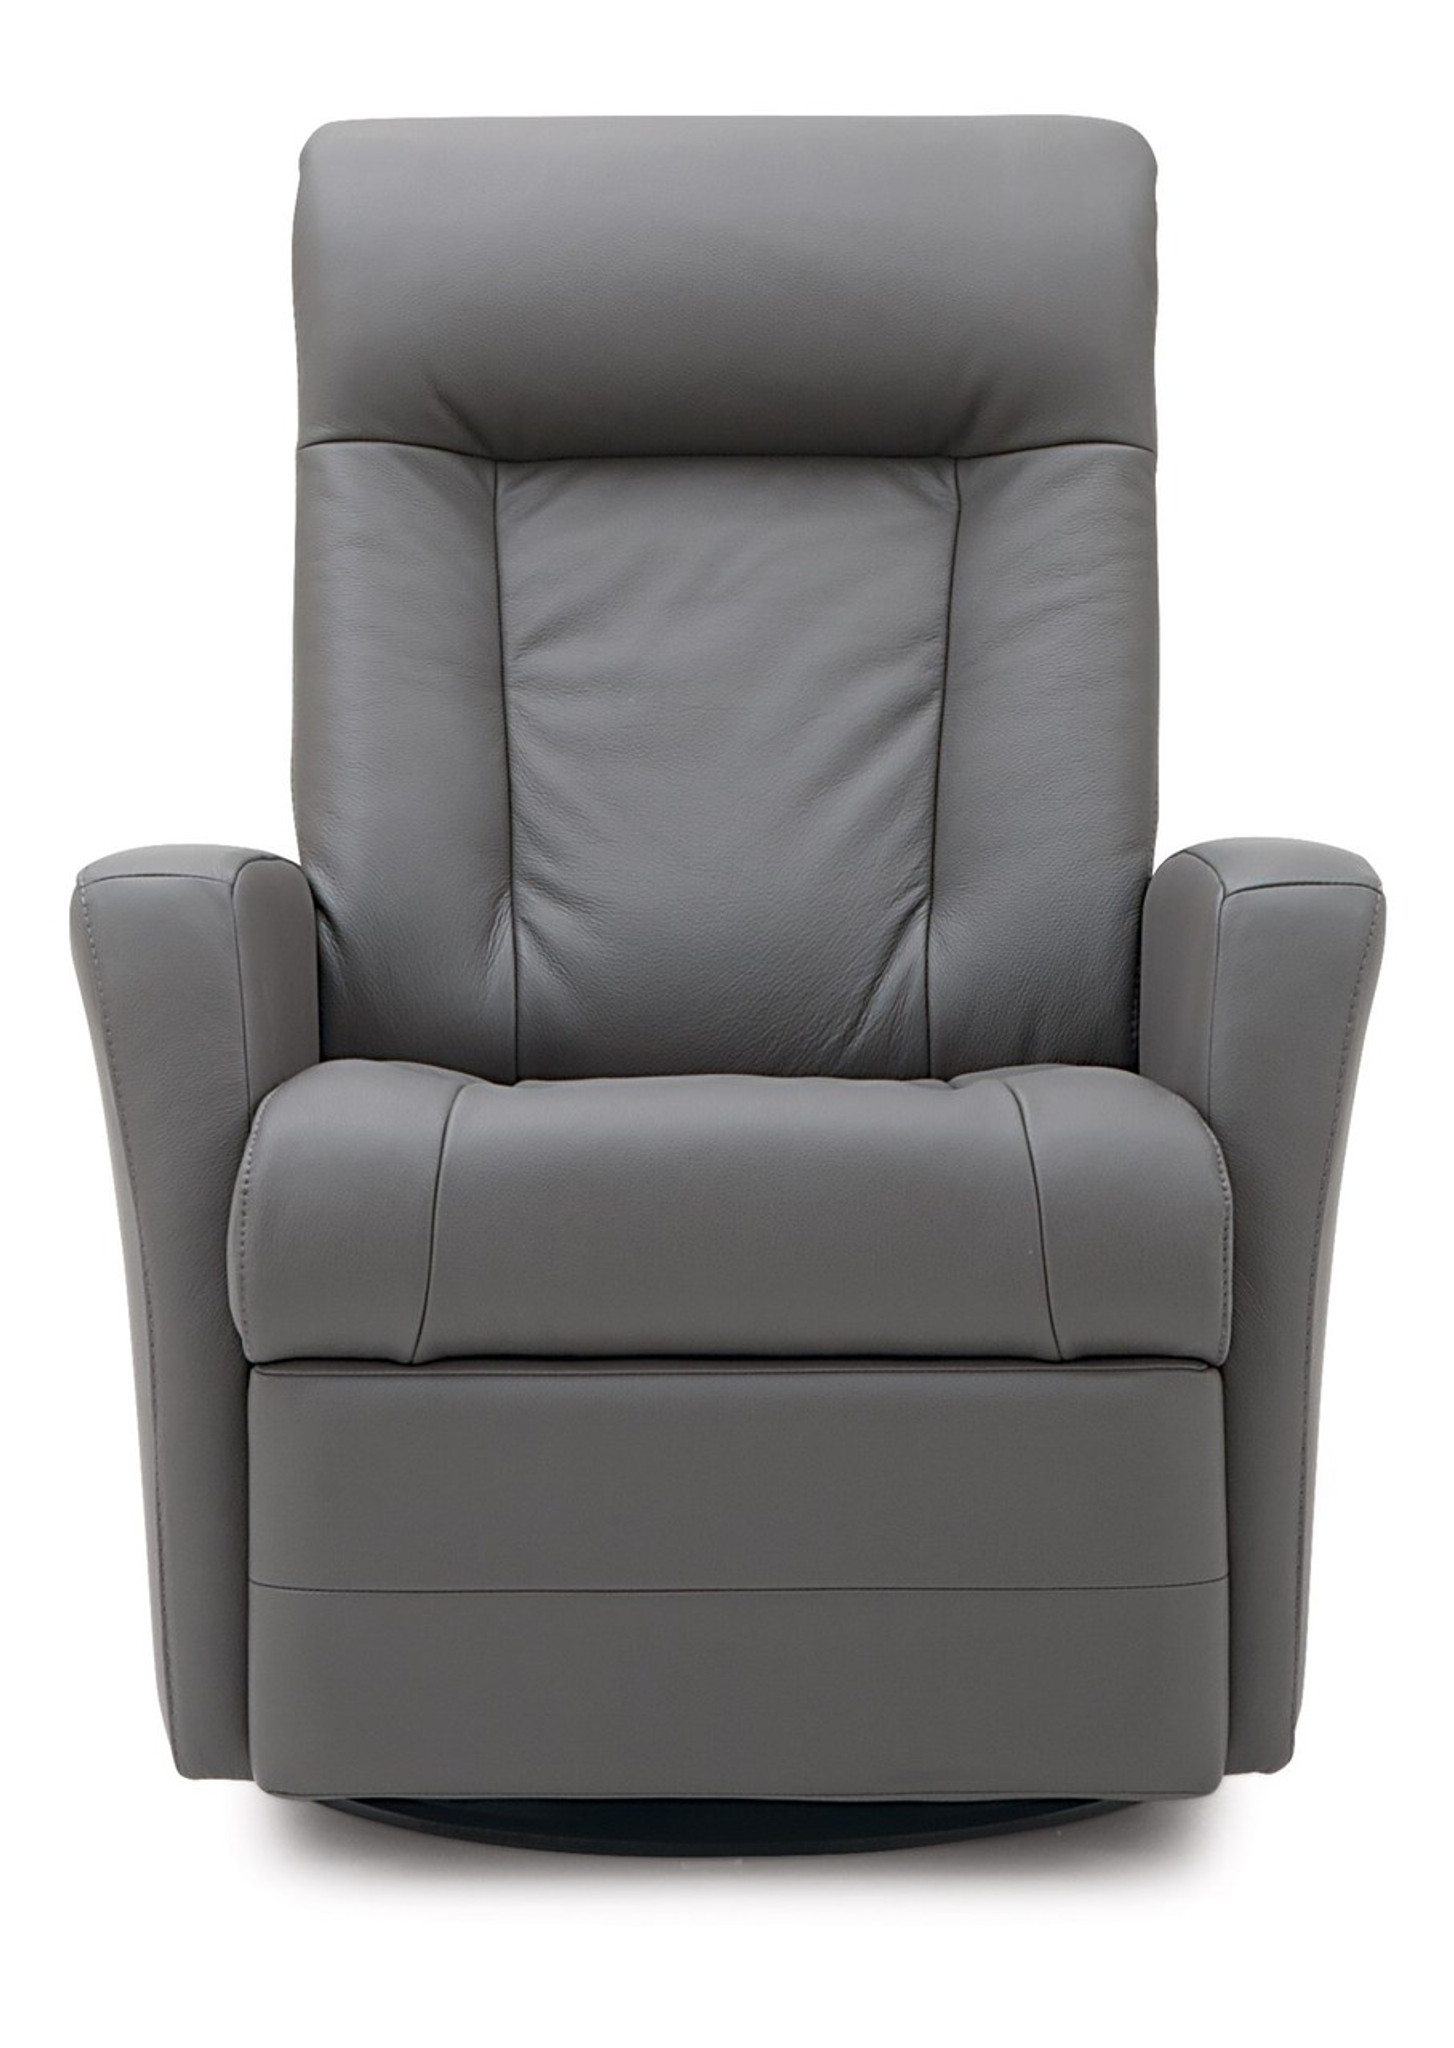 Palliser My Comfort Banff Model 42210 Bannff Ii Leather